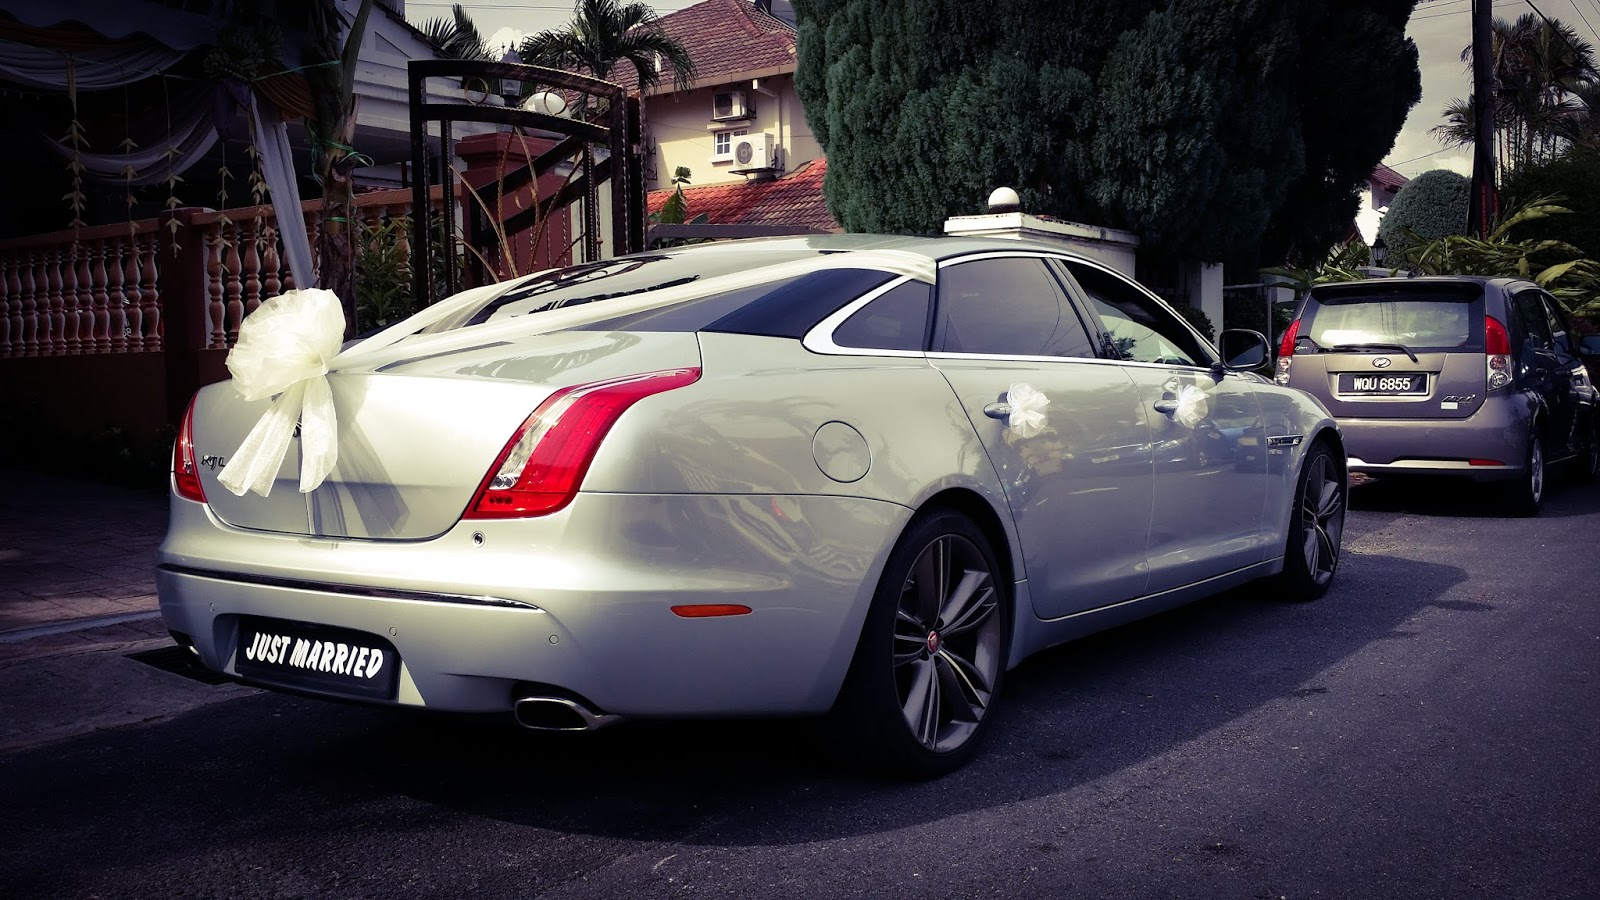 Jaguar XJL (Silver) RM 3000 Per Day With Chauffeur. RM 2000 Half Day With  Chauffeur